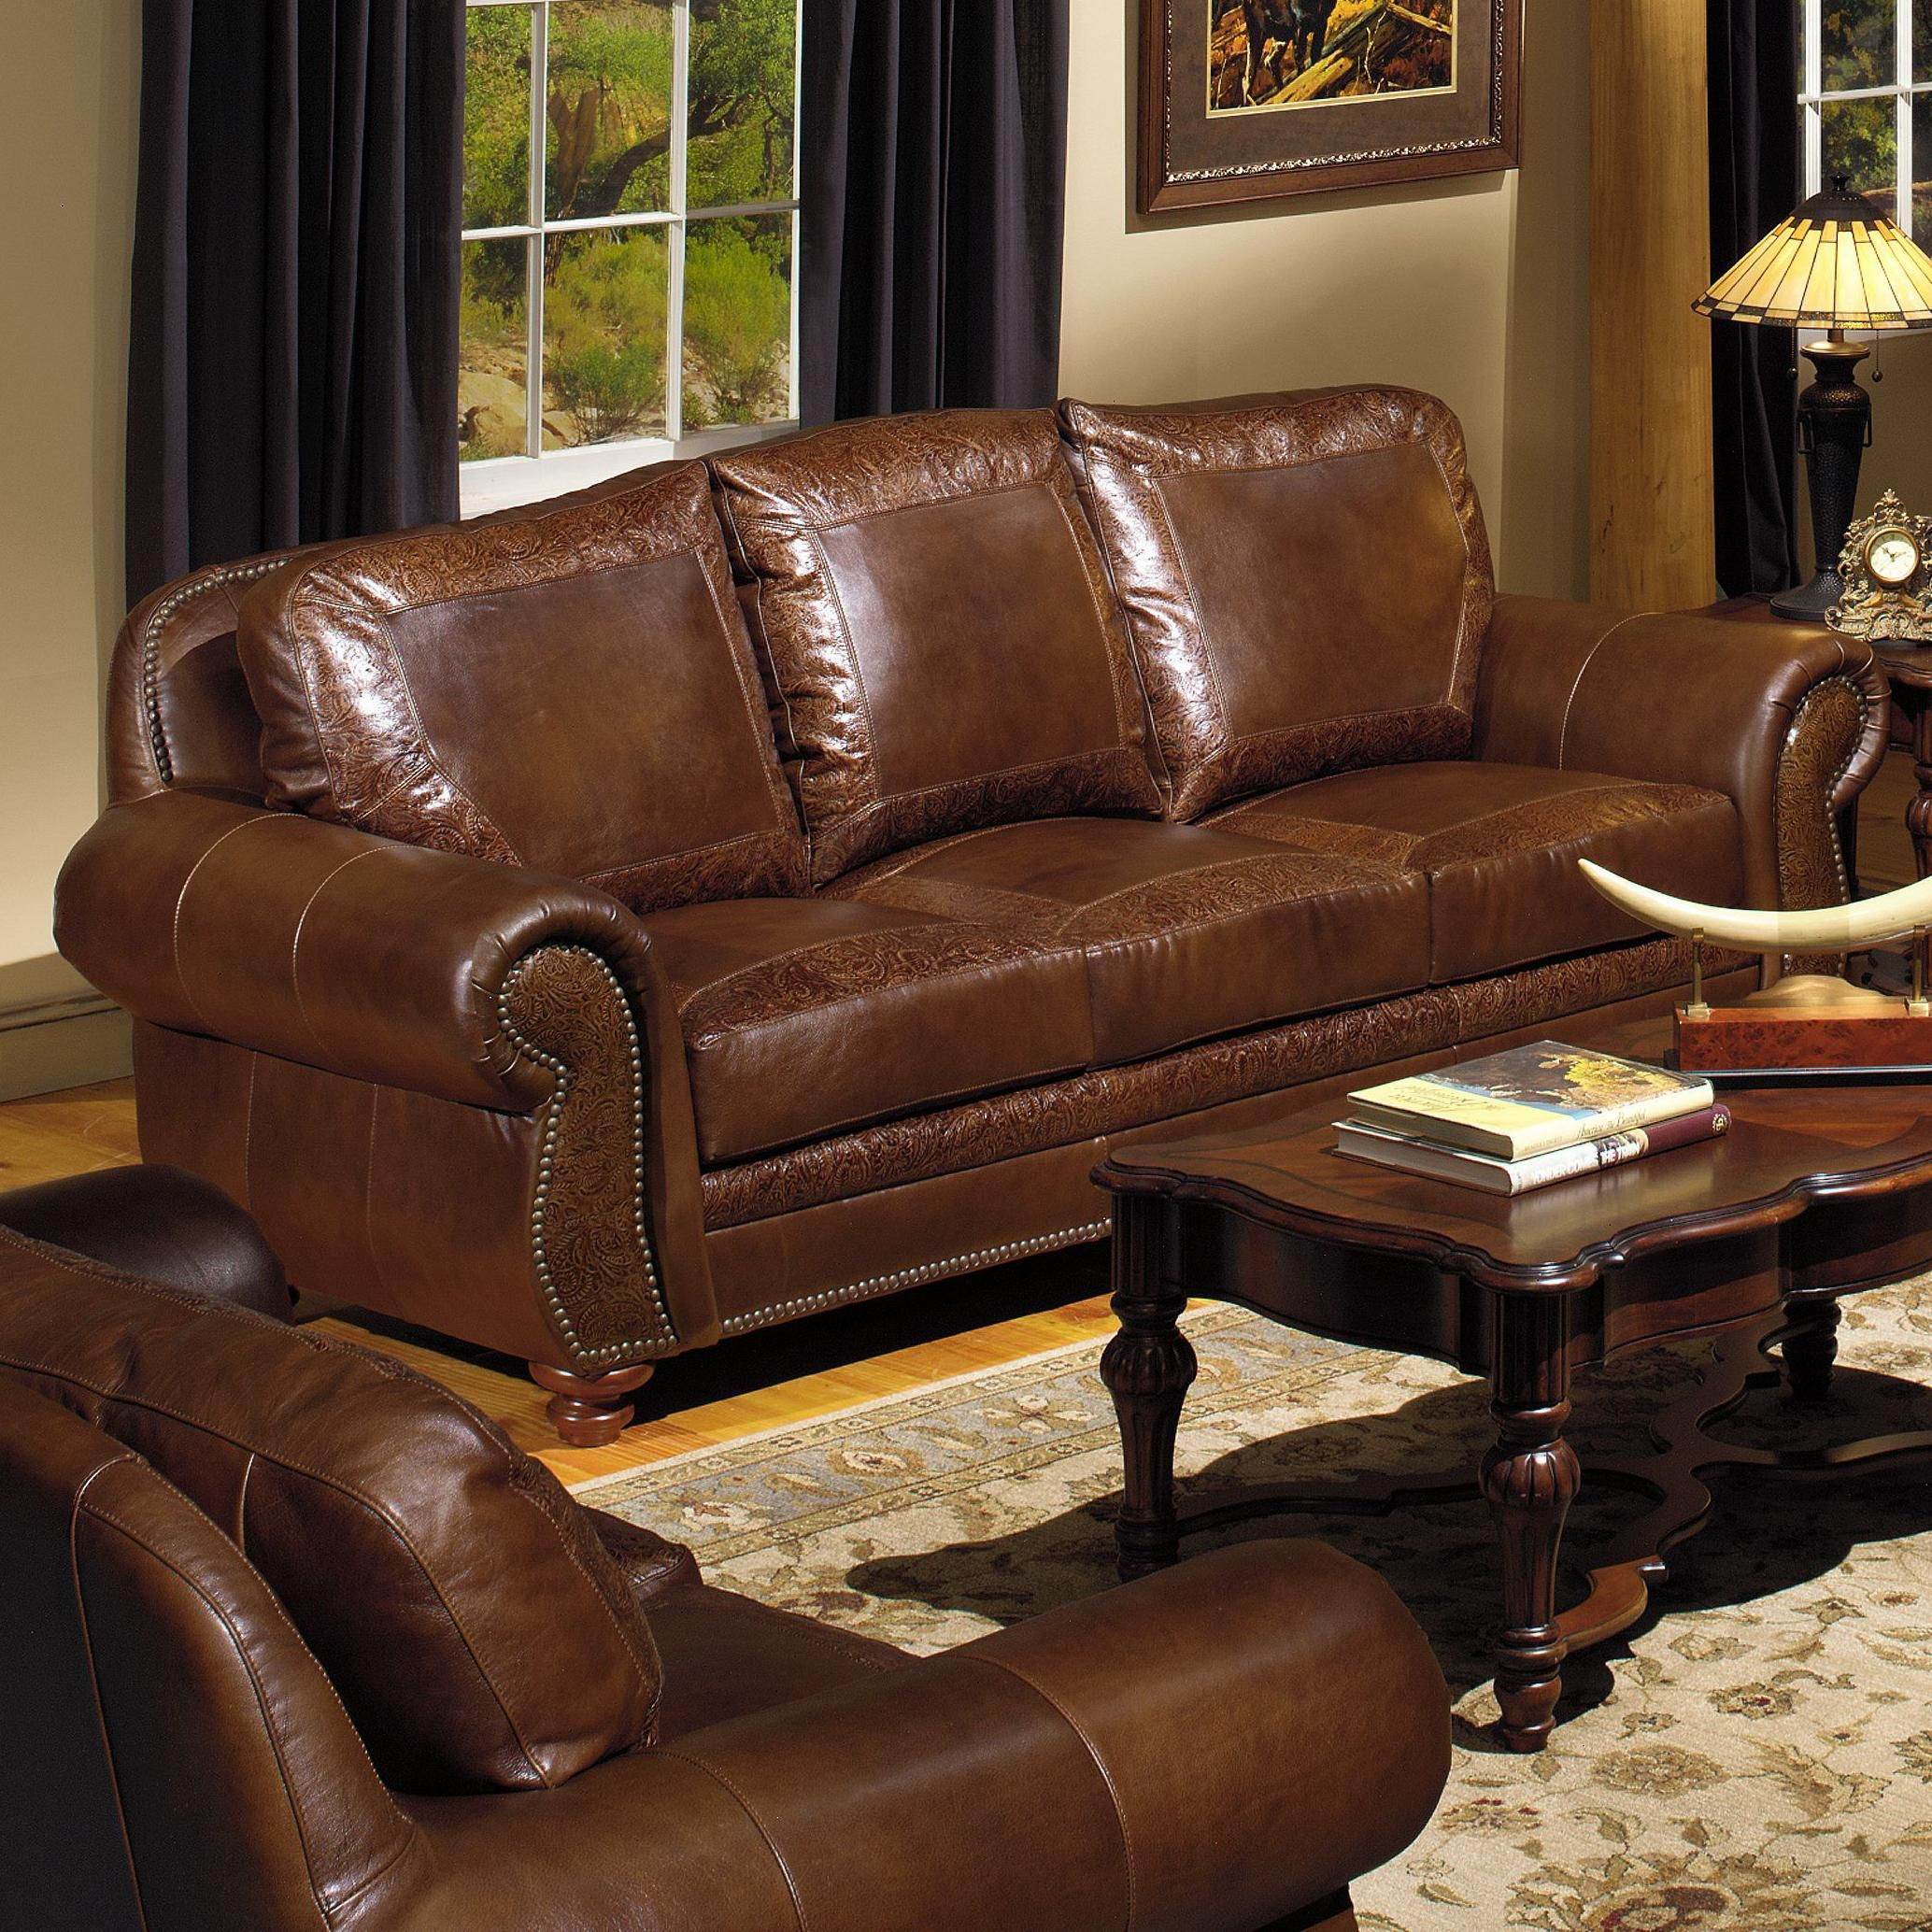 8555 traditional leather sofa with nailhead trim by usa premium leather part of the 8555 collection